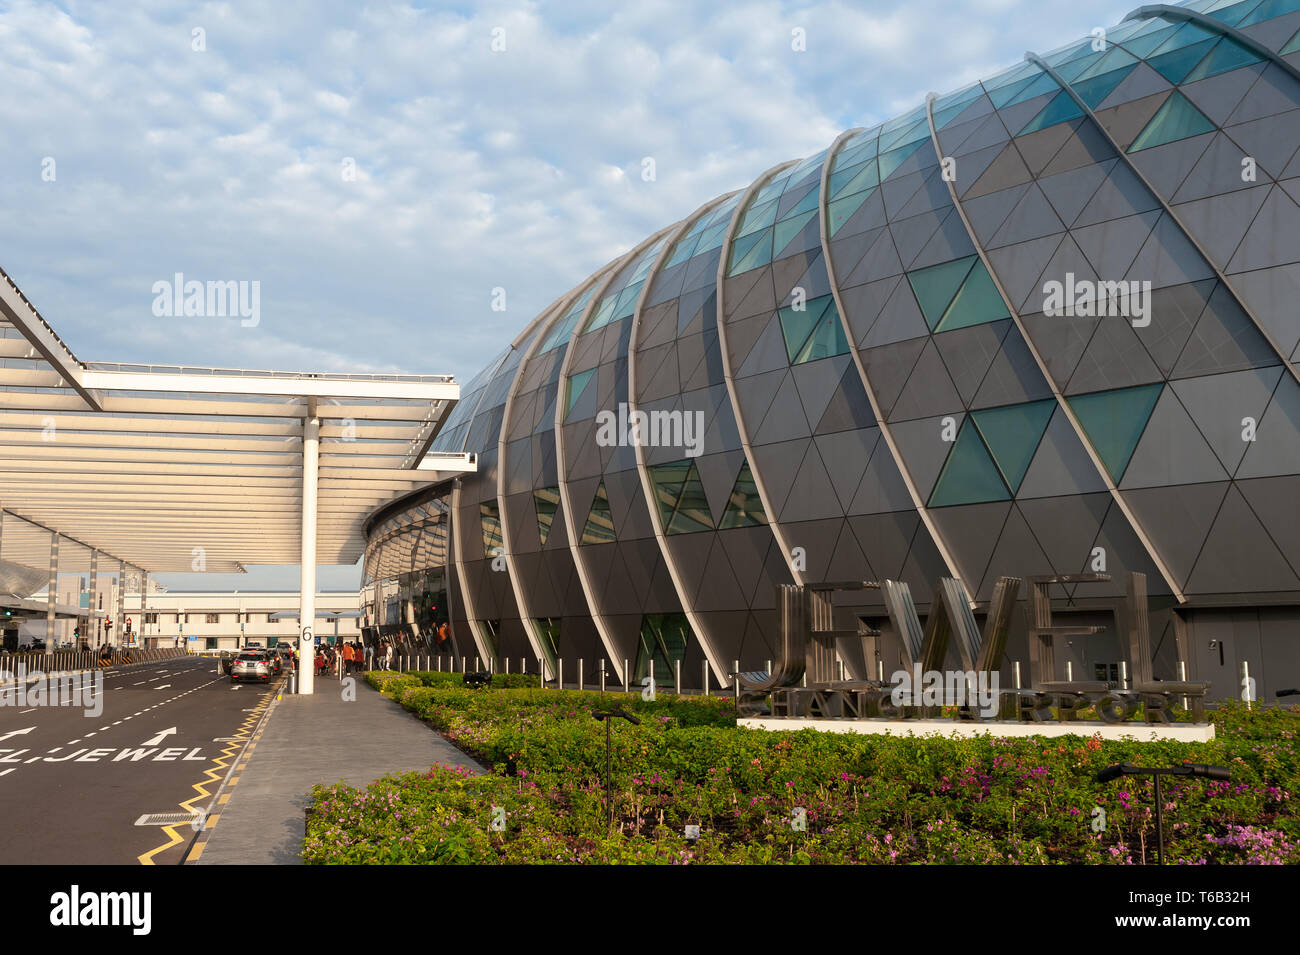 28.04.2019, Singapore, Republic of Singapore, Asia - Driveway to the new Jewel Terminal at Changi Airport, designed by Moshe Safdie Architects. - Stock Image